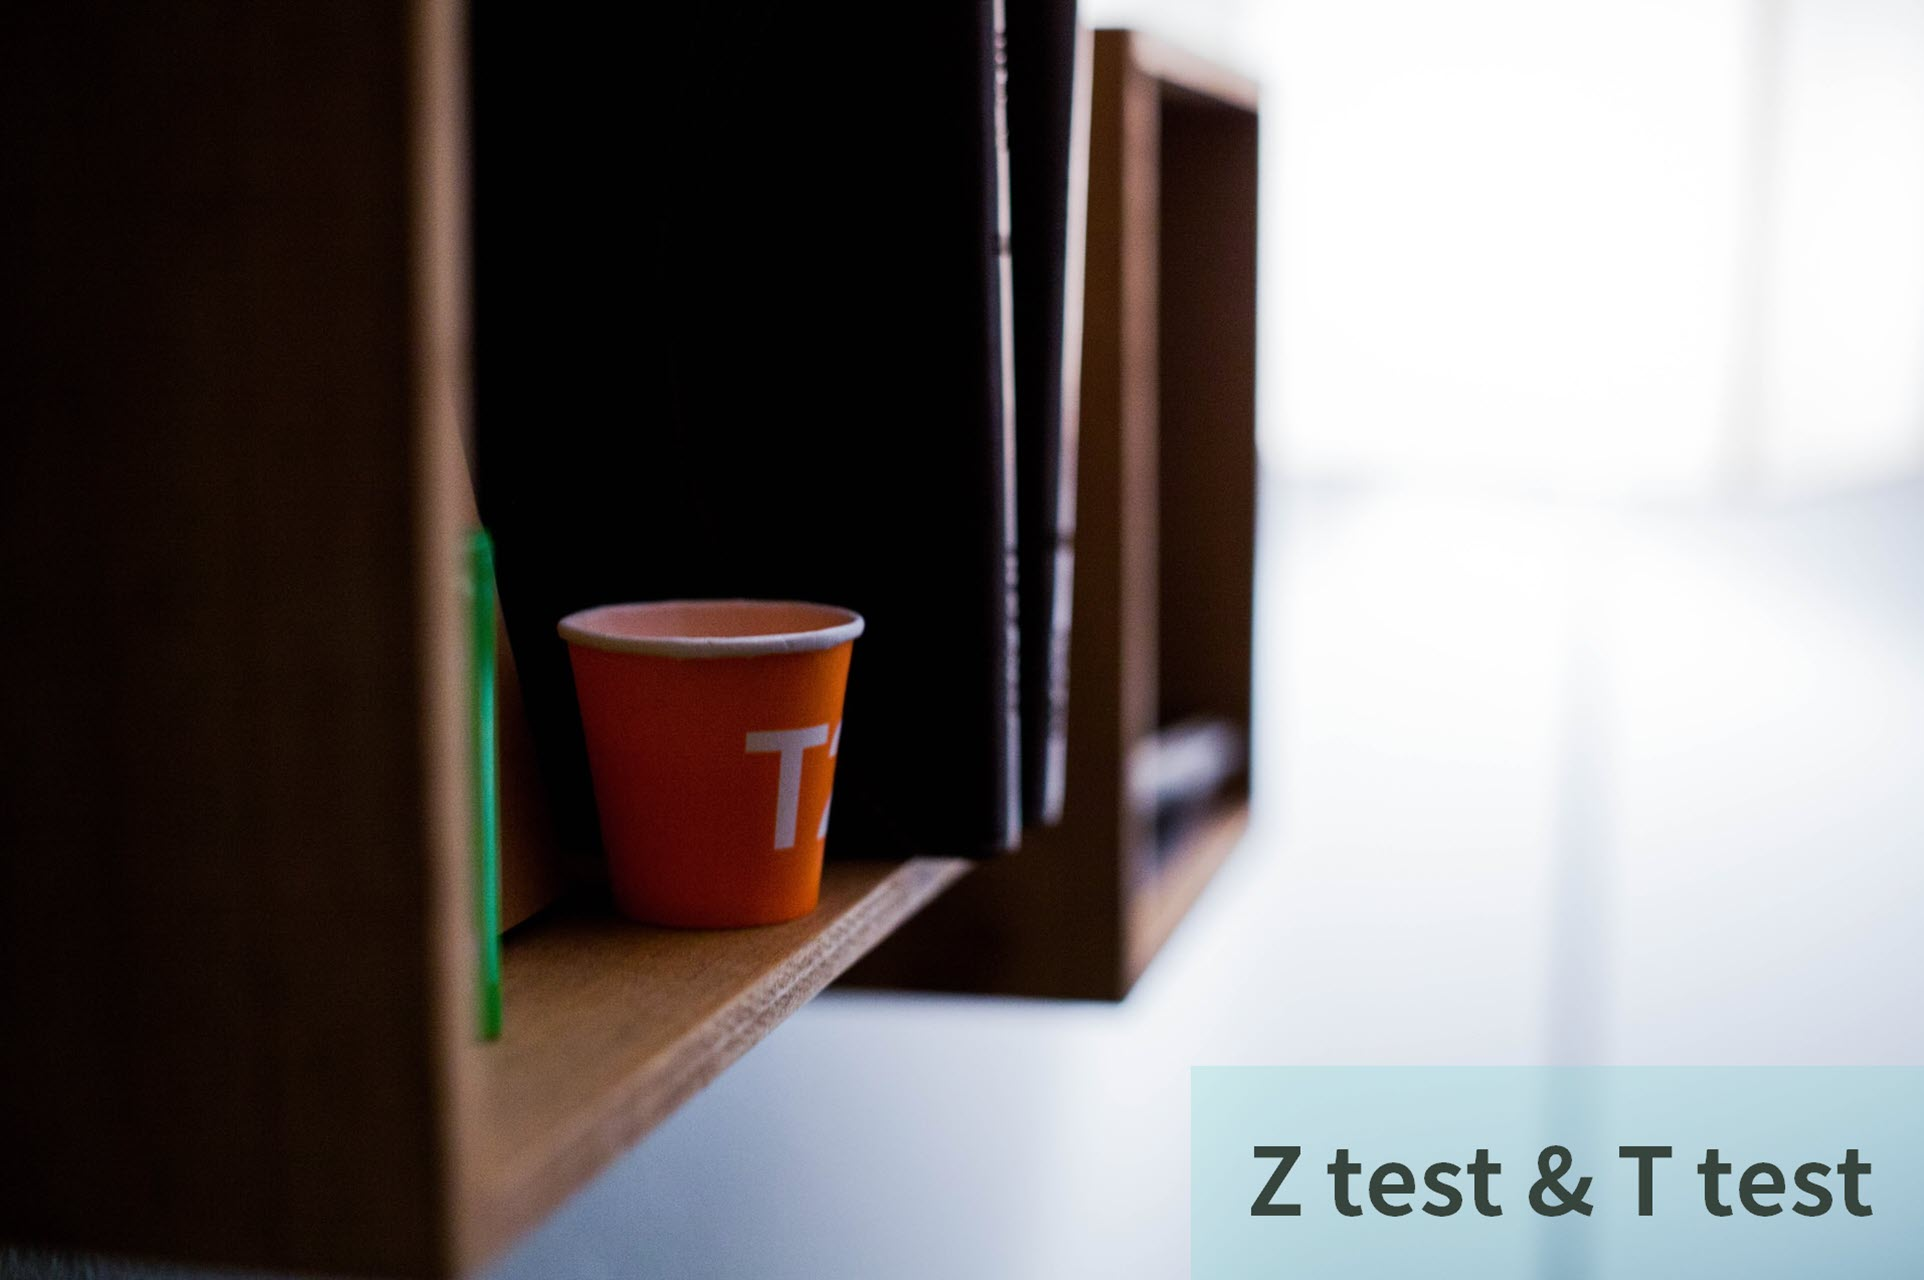 Hypothesis Testing - Z Test and T Test